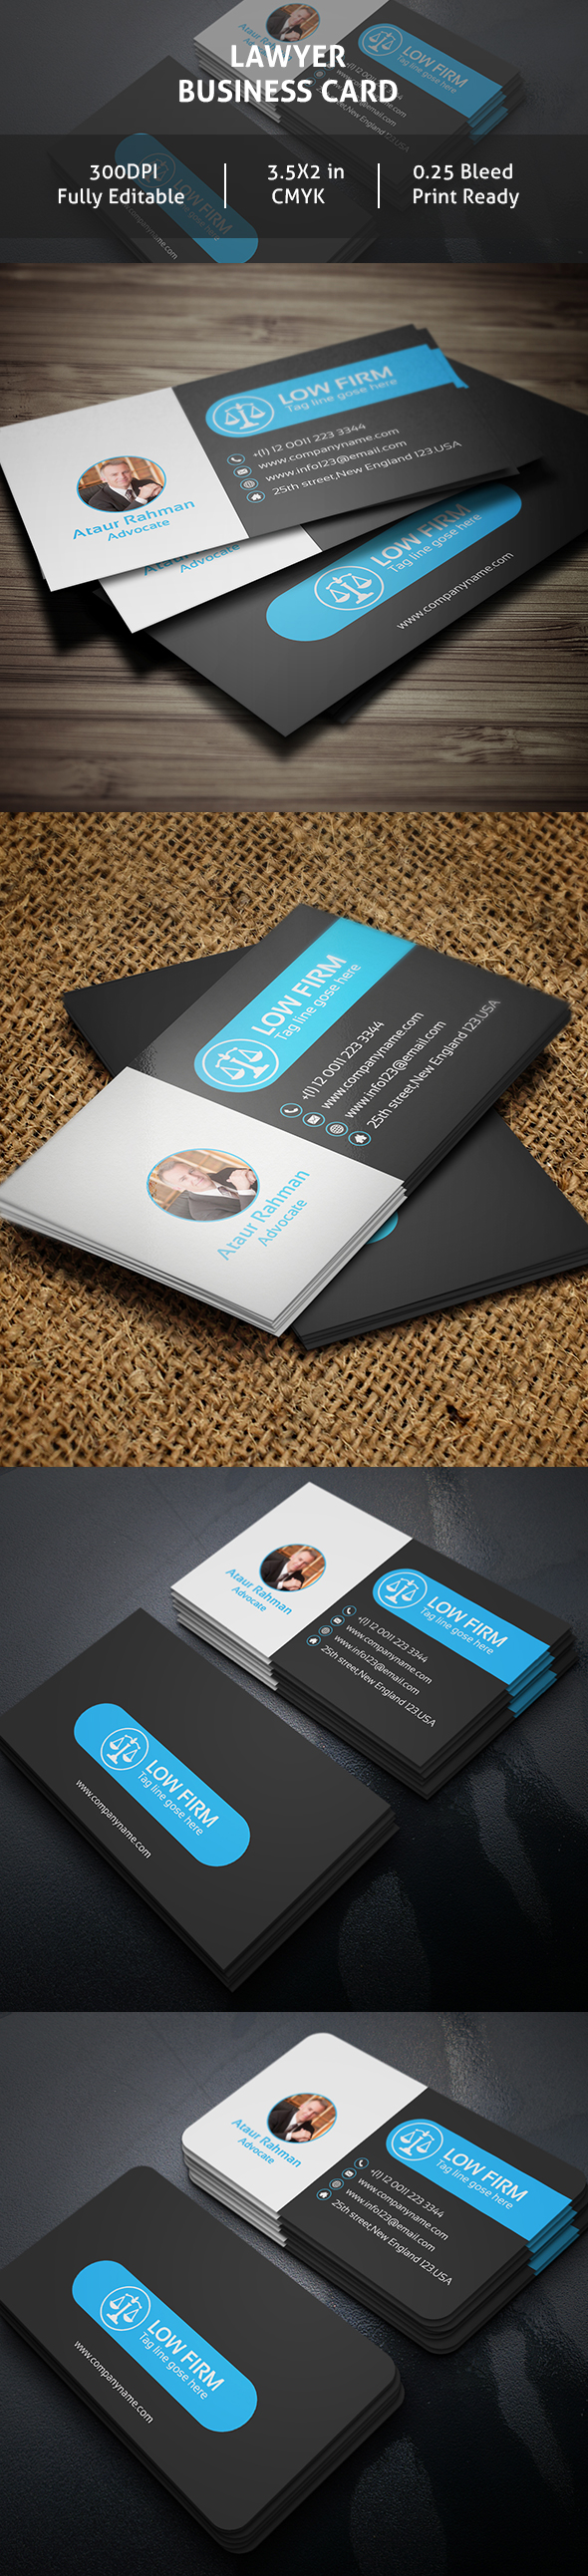 Free lawyer business card on behance reheart Choice Image